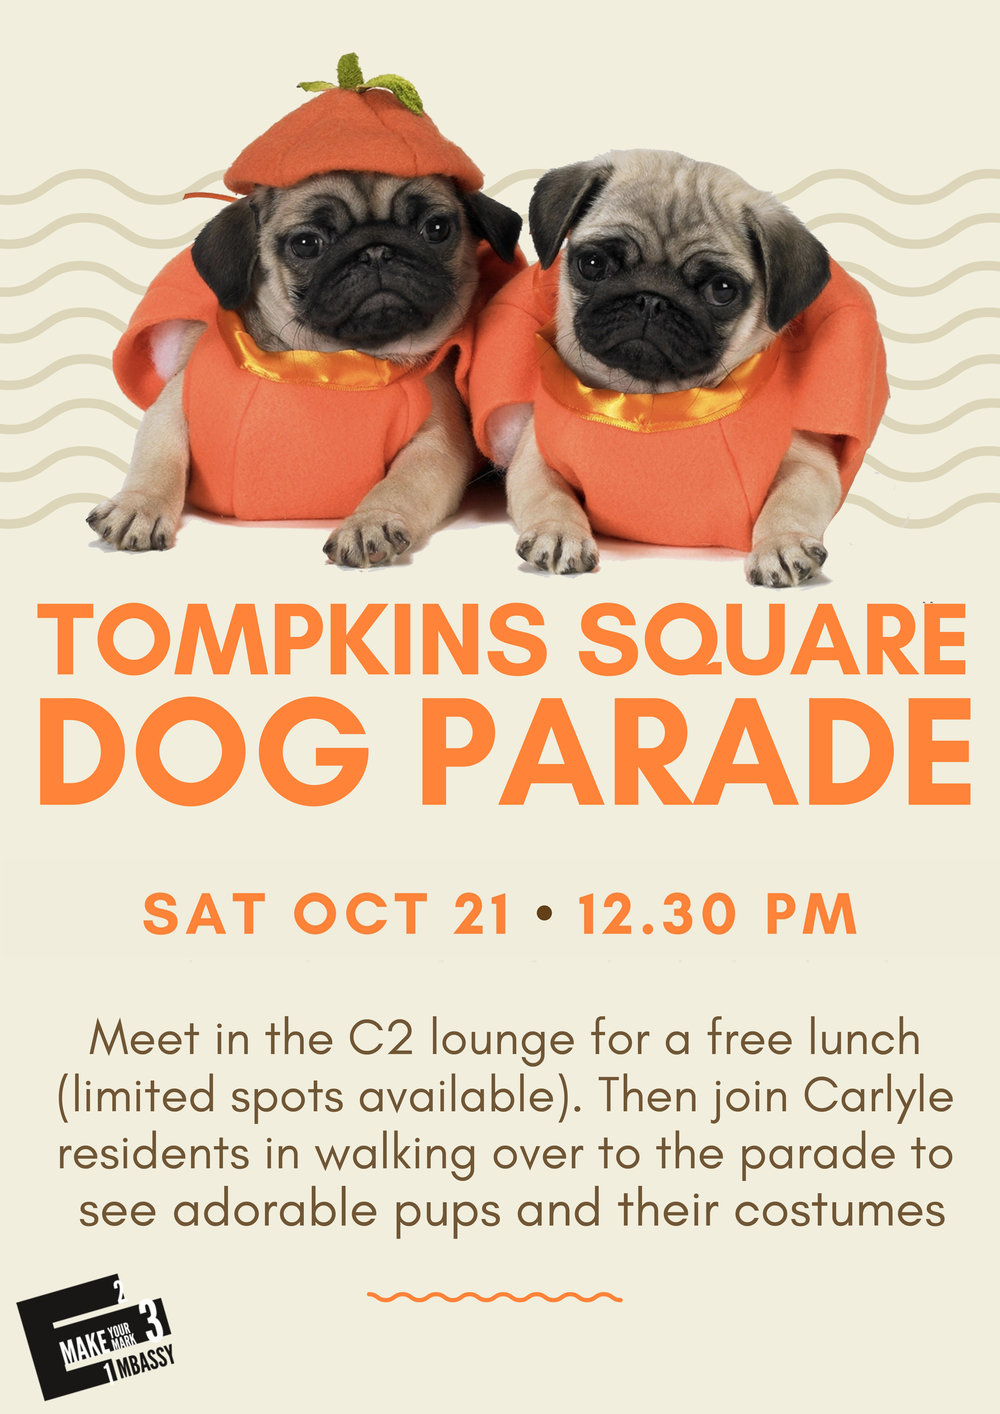 Embassy Tompkins Sq Dog Parade.jpg